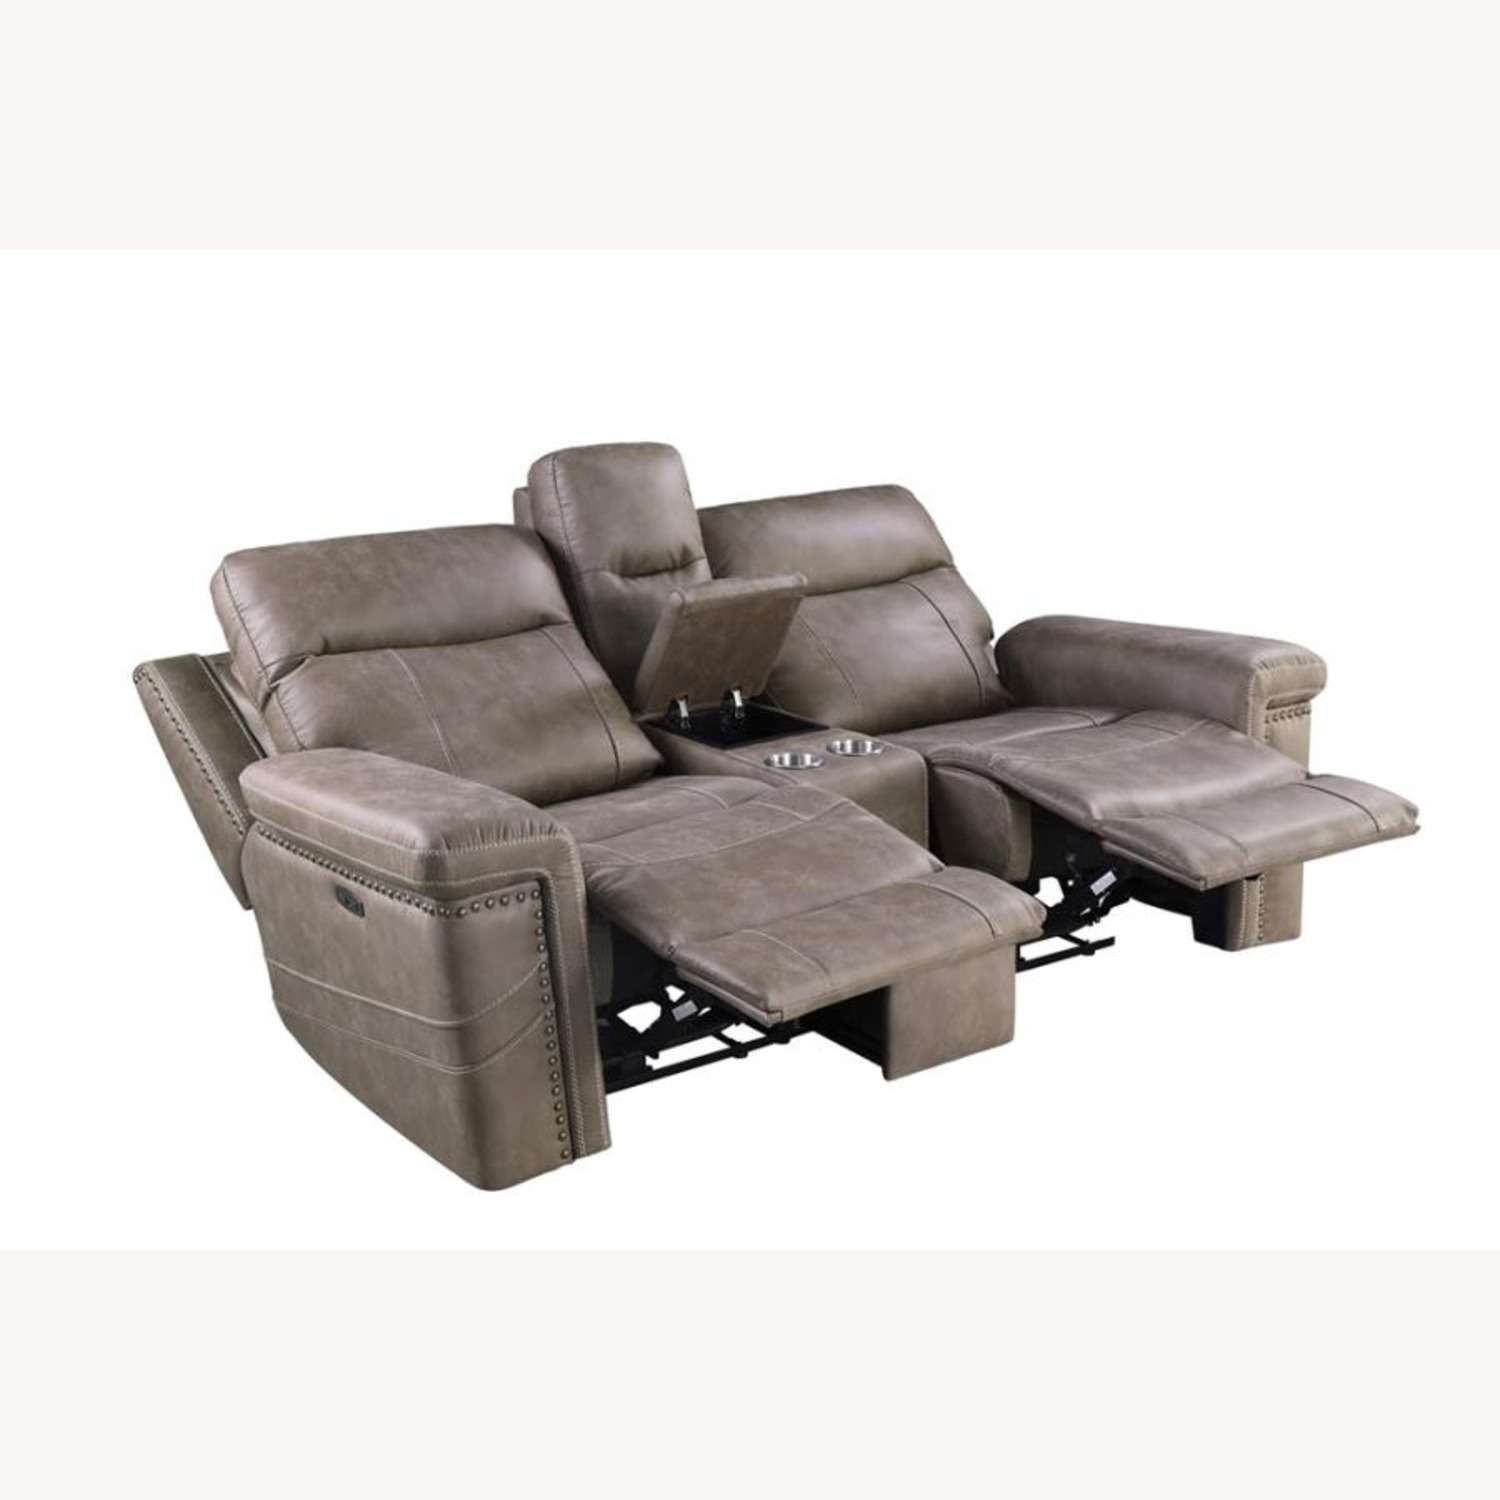 Power Loveseat Recliner In Taupe Upholstery - image-1